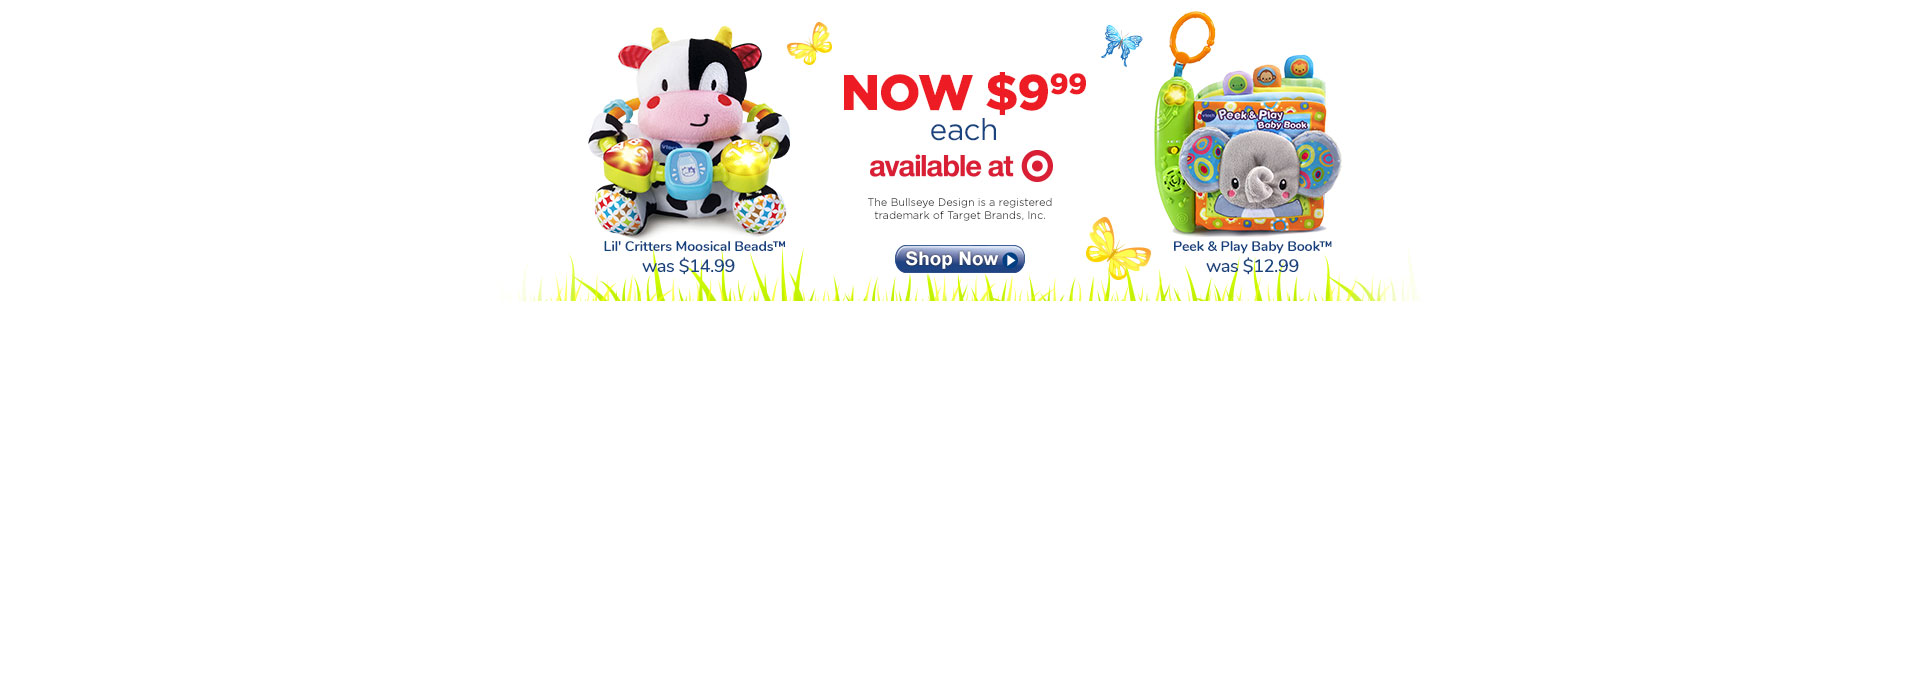 Sale $9.99 -  80-166000  Lil Critters Moosical Beads & 80-189300  Peek & Play Baby Book